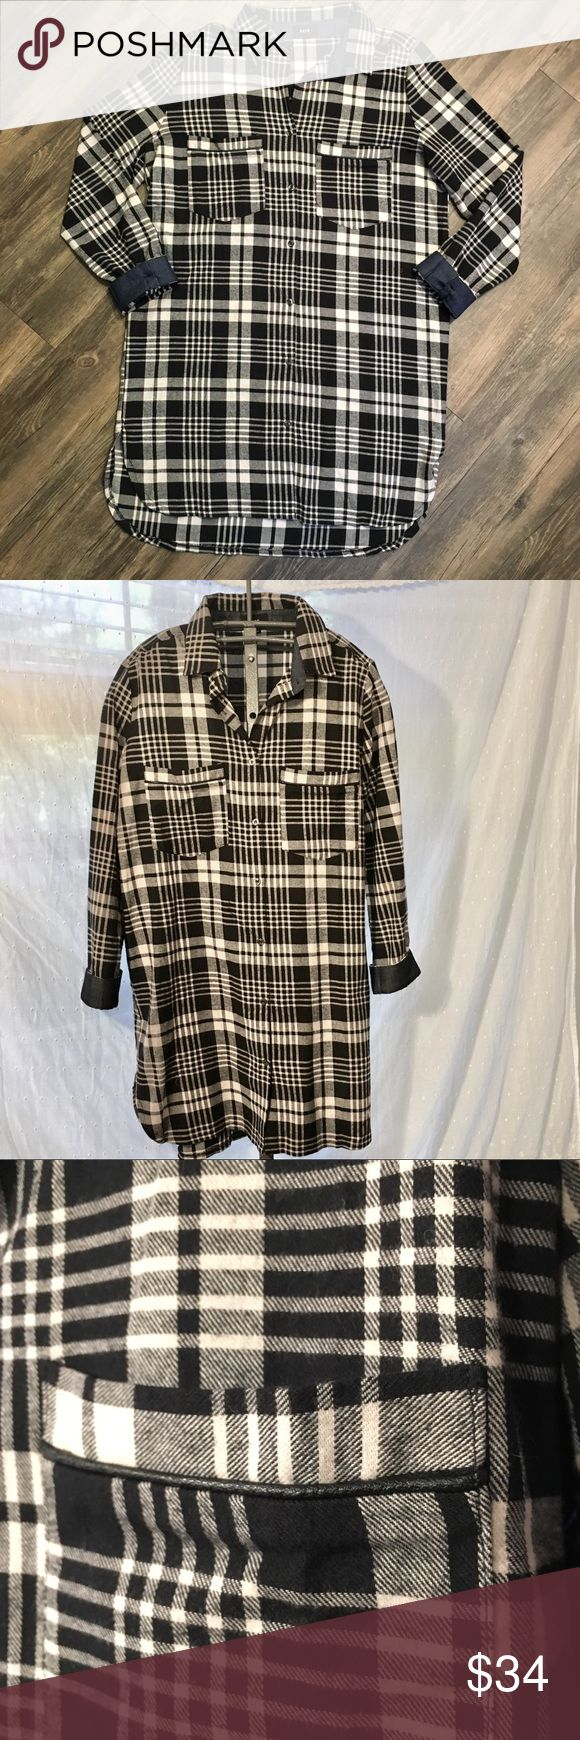 Black and white plaid flannel shirt dress Aborable T-shirt dress with 3/4 length sleeves. End of sleeves are lined in denim. Leather piping detail on pockets on chest. Front button closure.  90% cotton  35 in length Fate Dresses